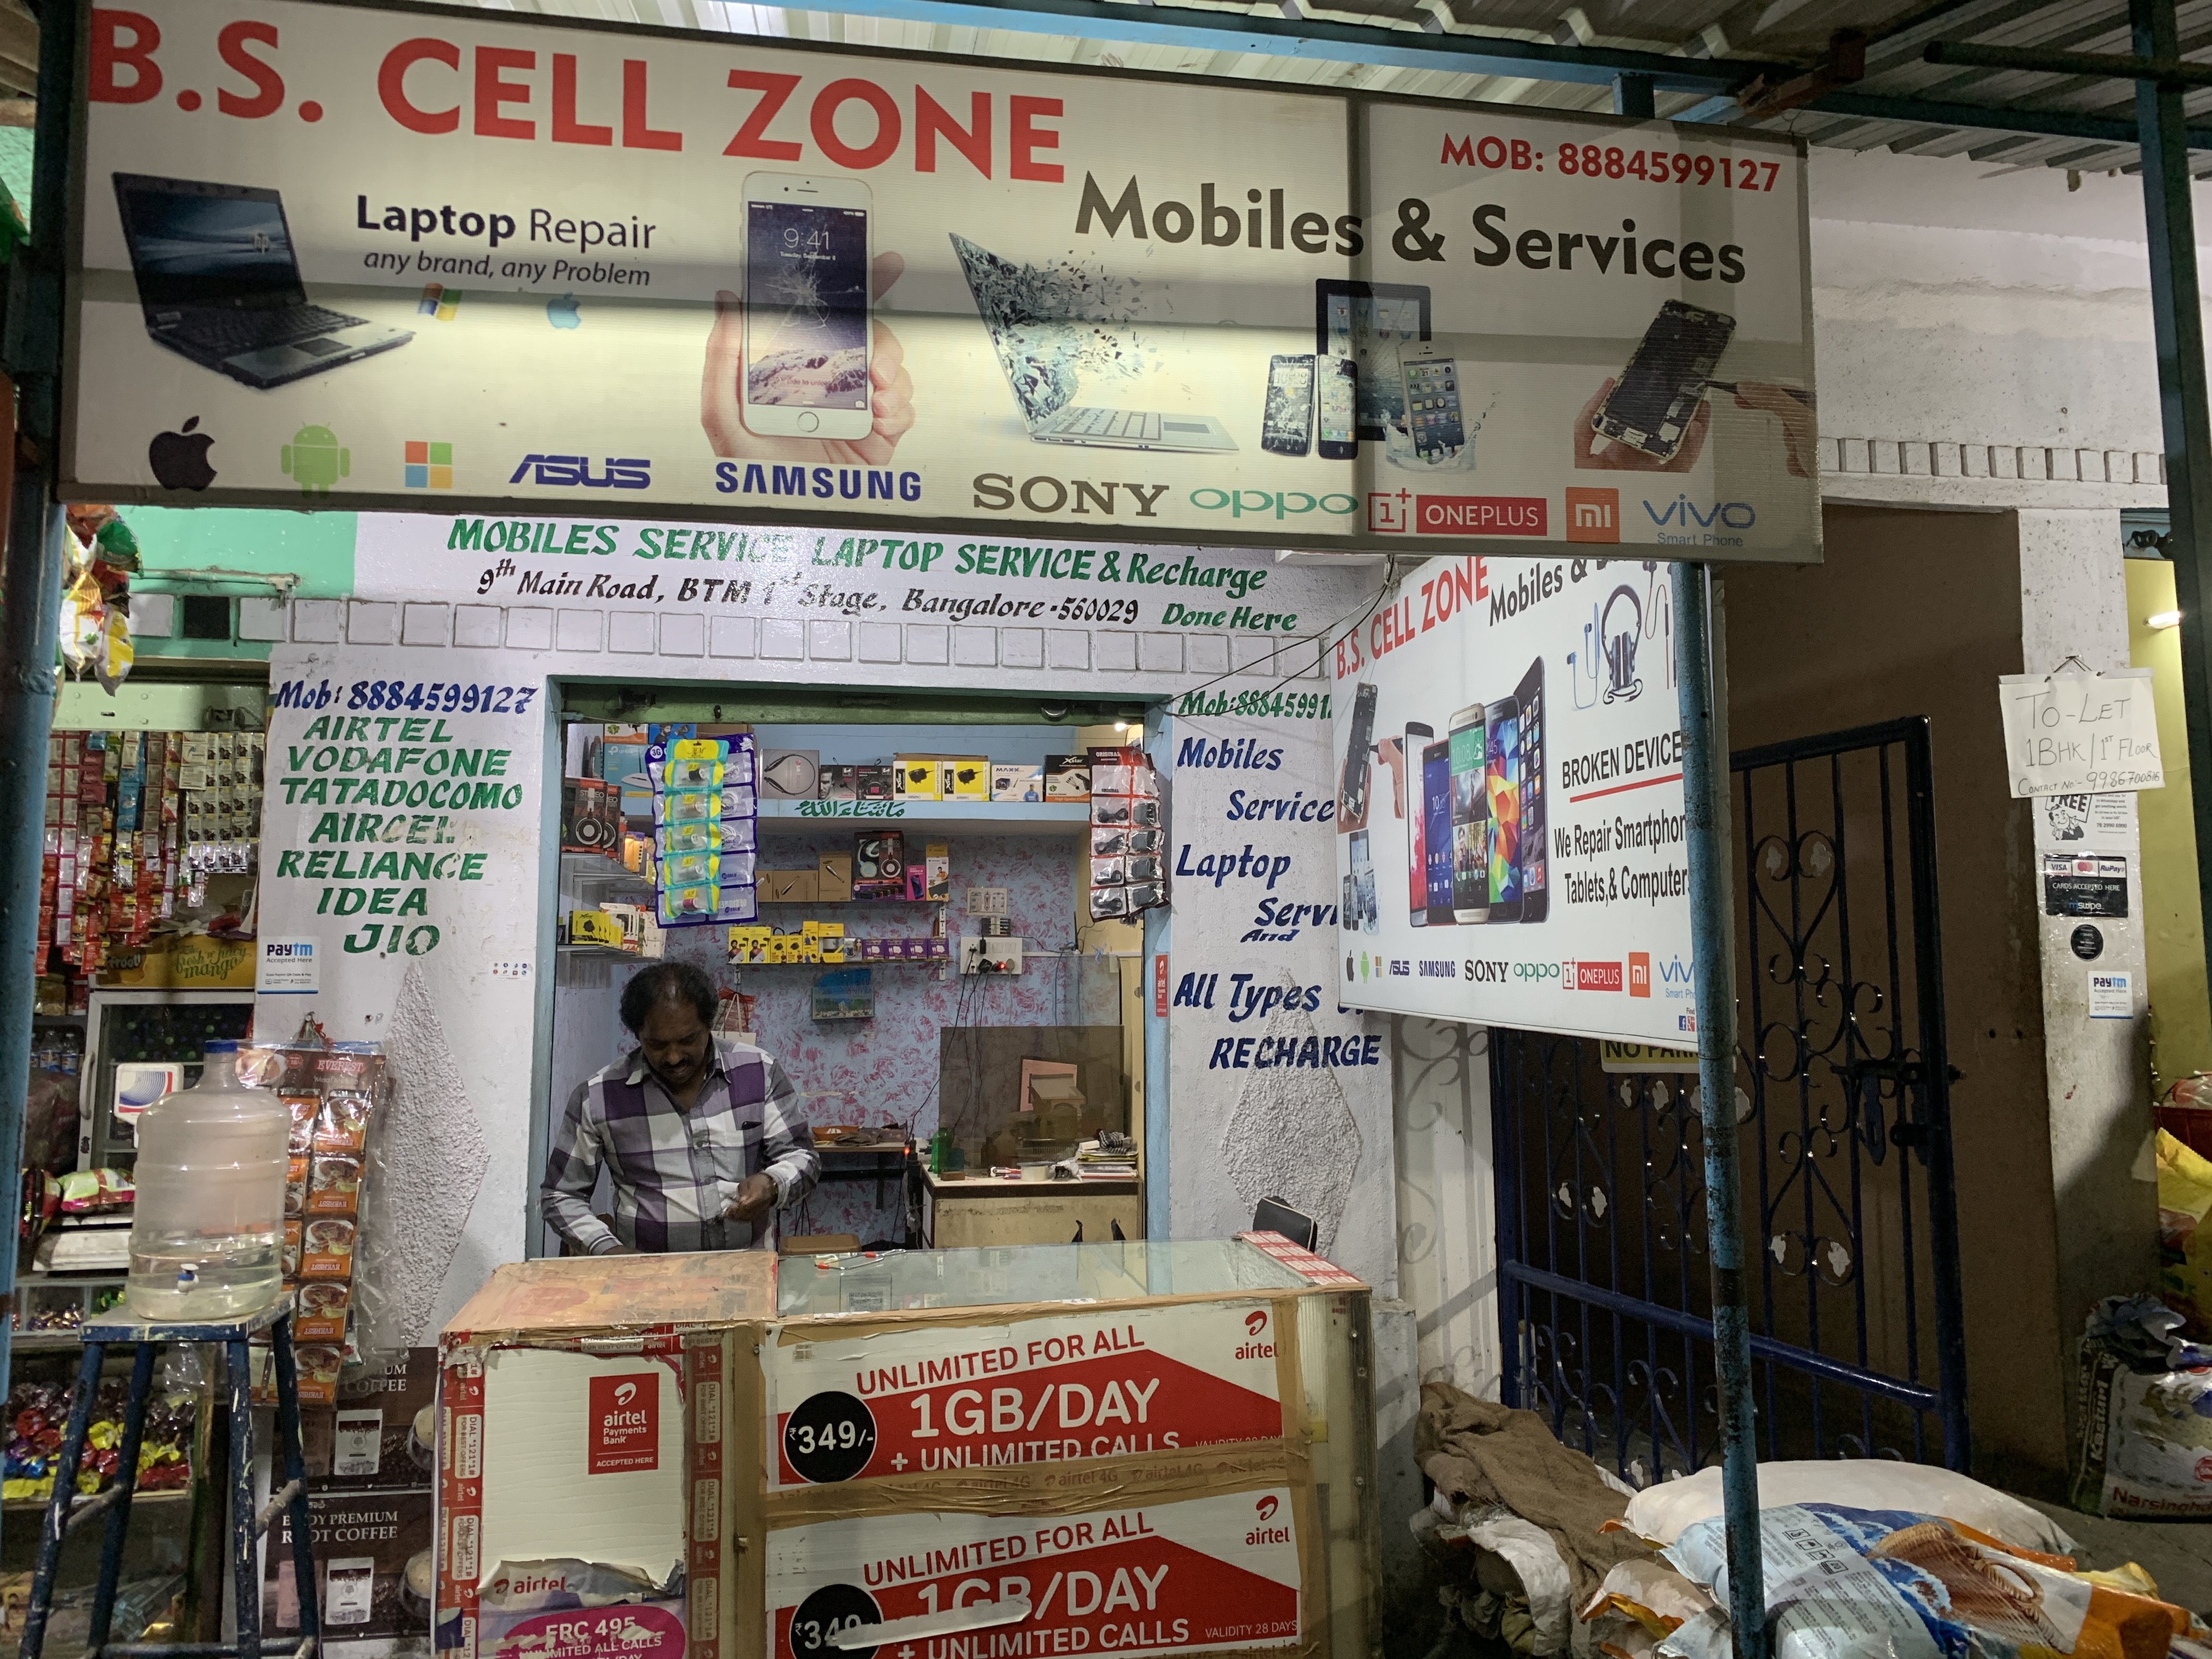 Mobile Phone Repair Services in BTM Layout, Bangalore